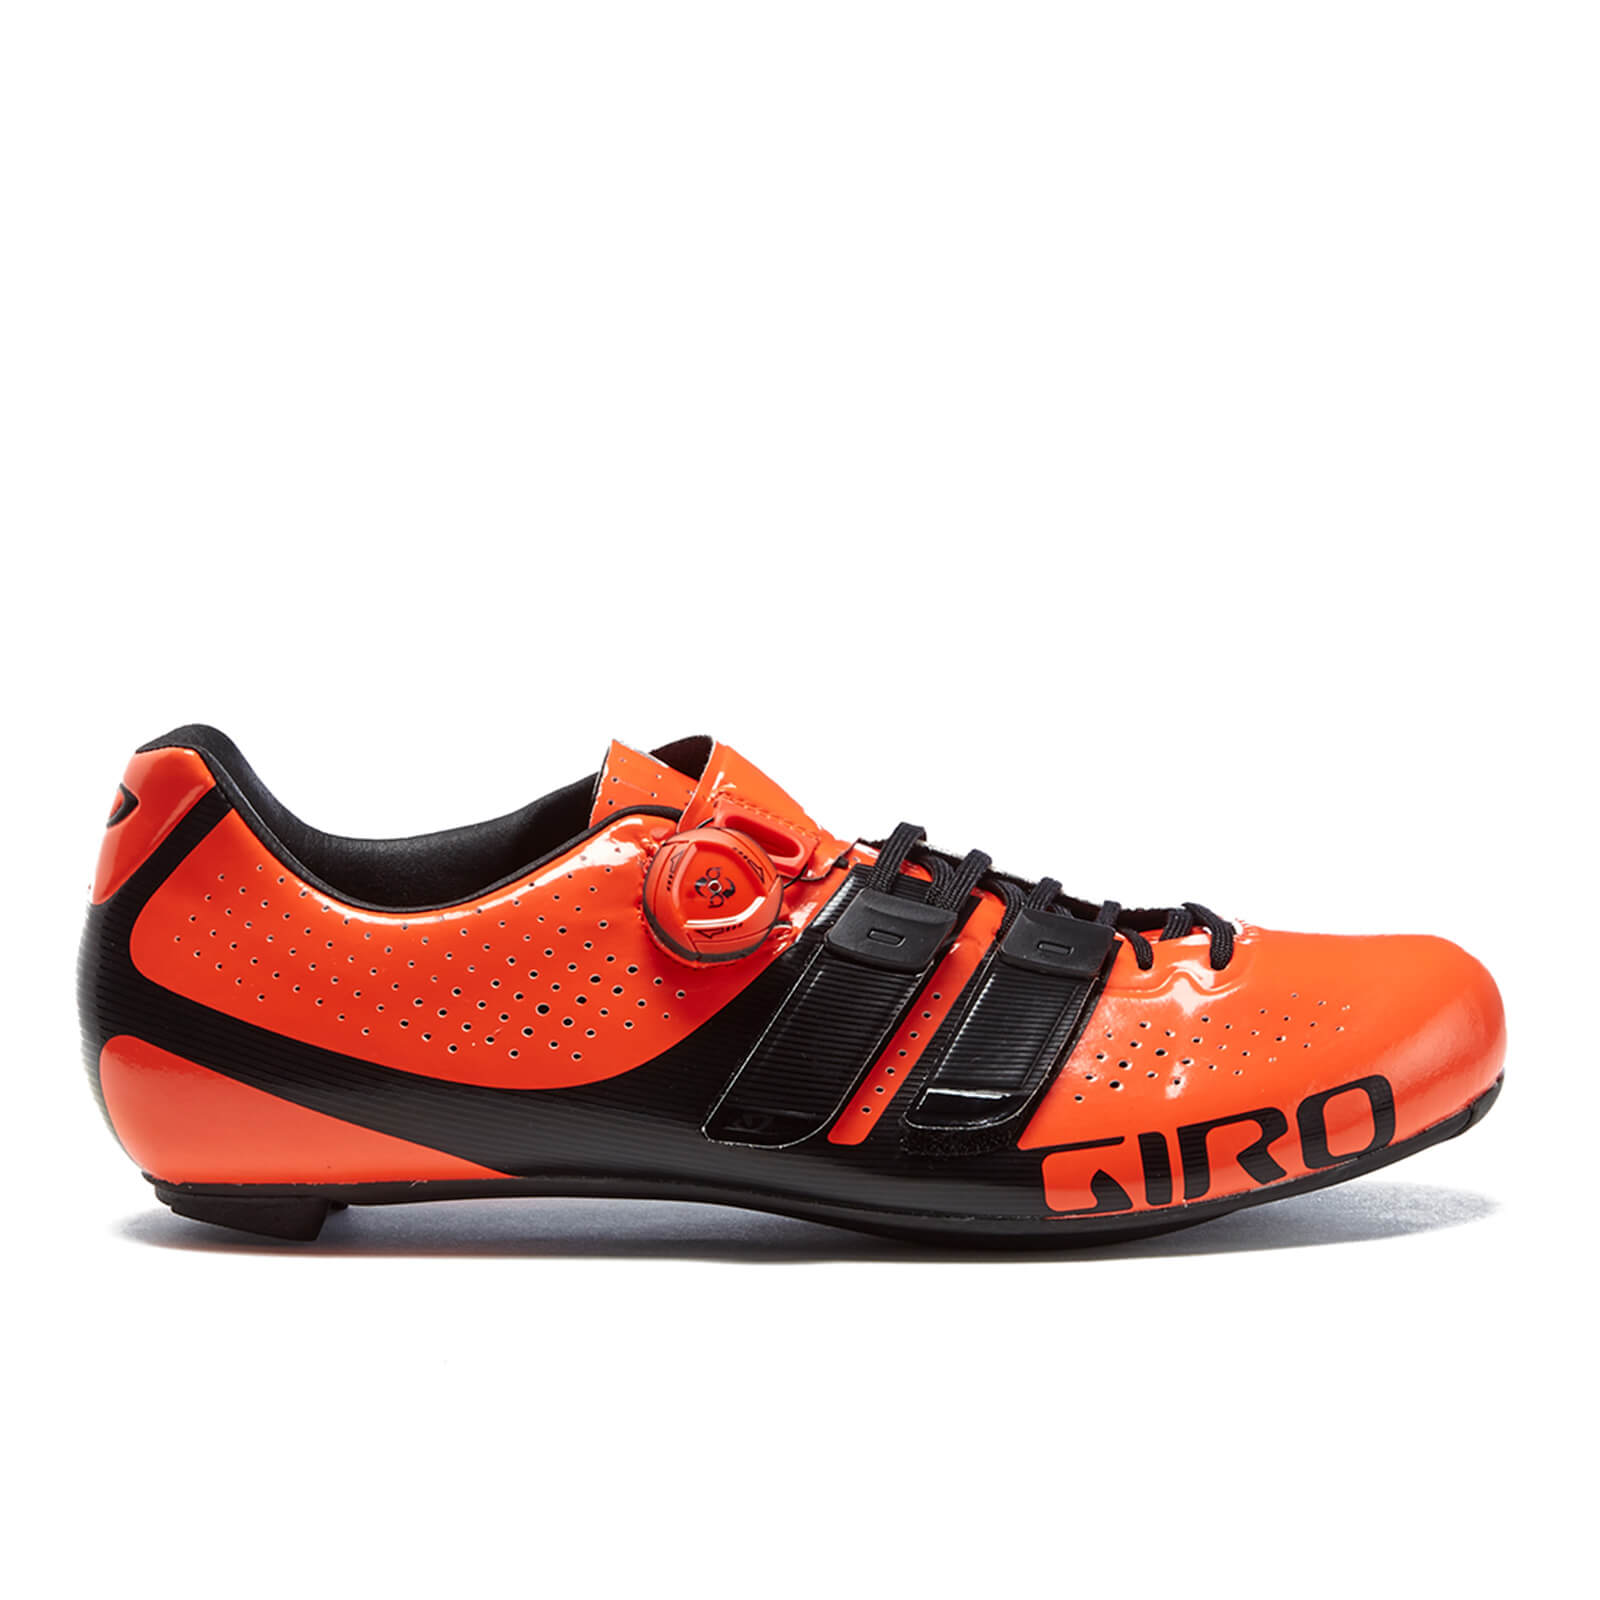 Giro Factor Techlace Road Cyling Shoes - Red/Black